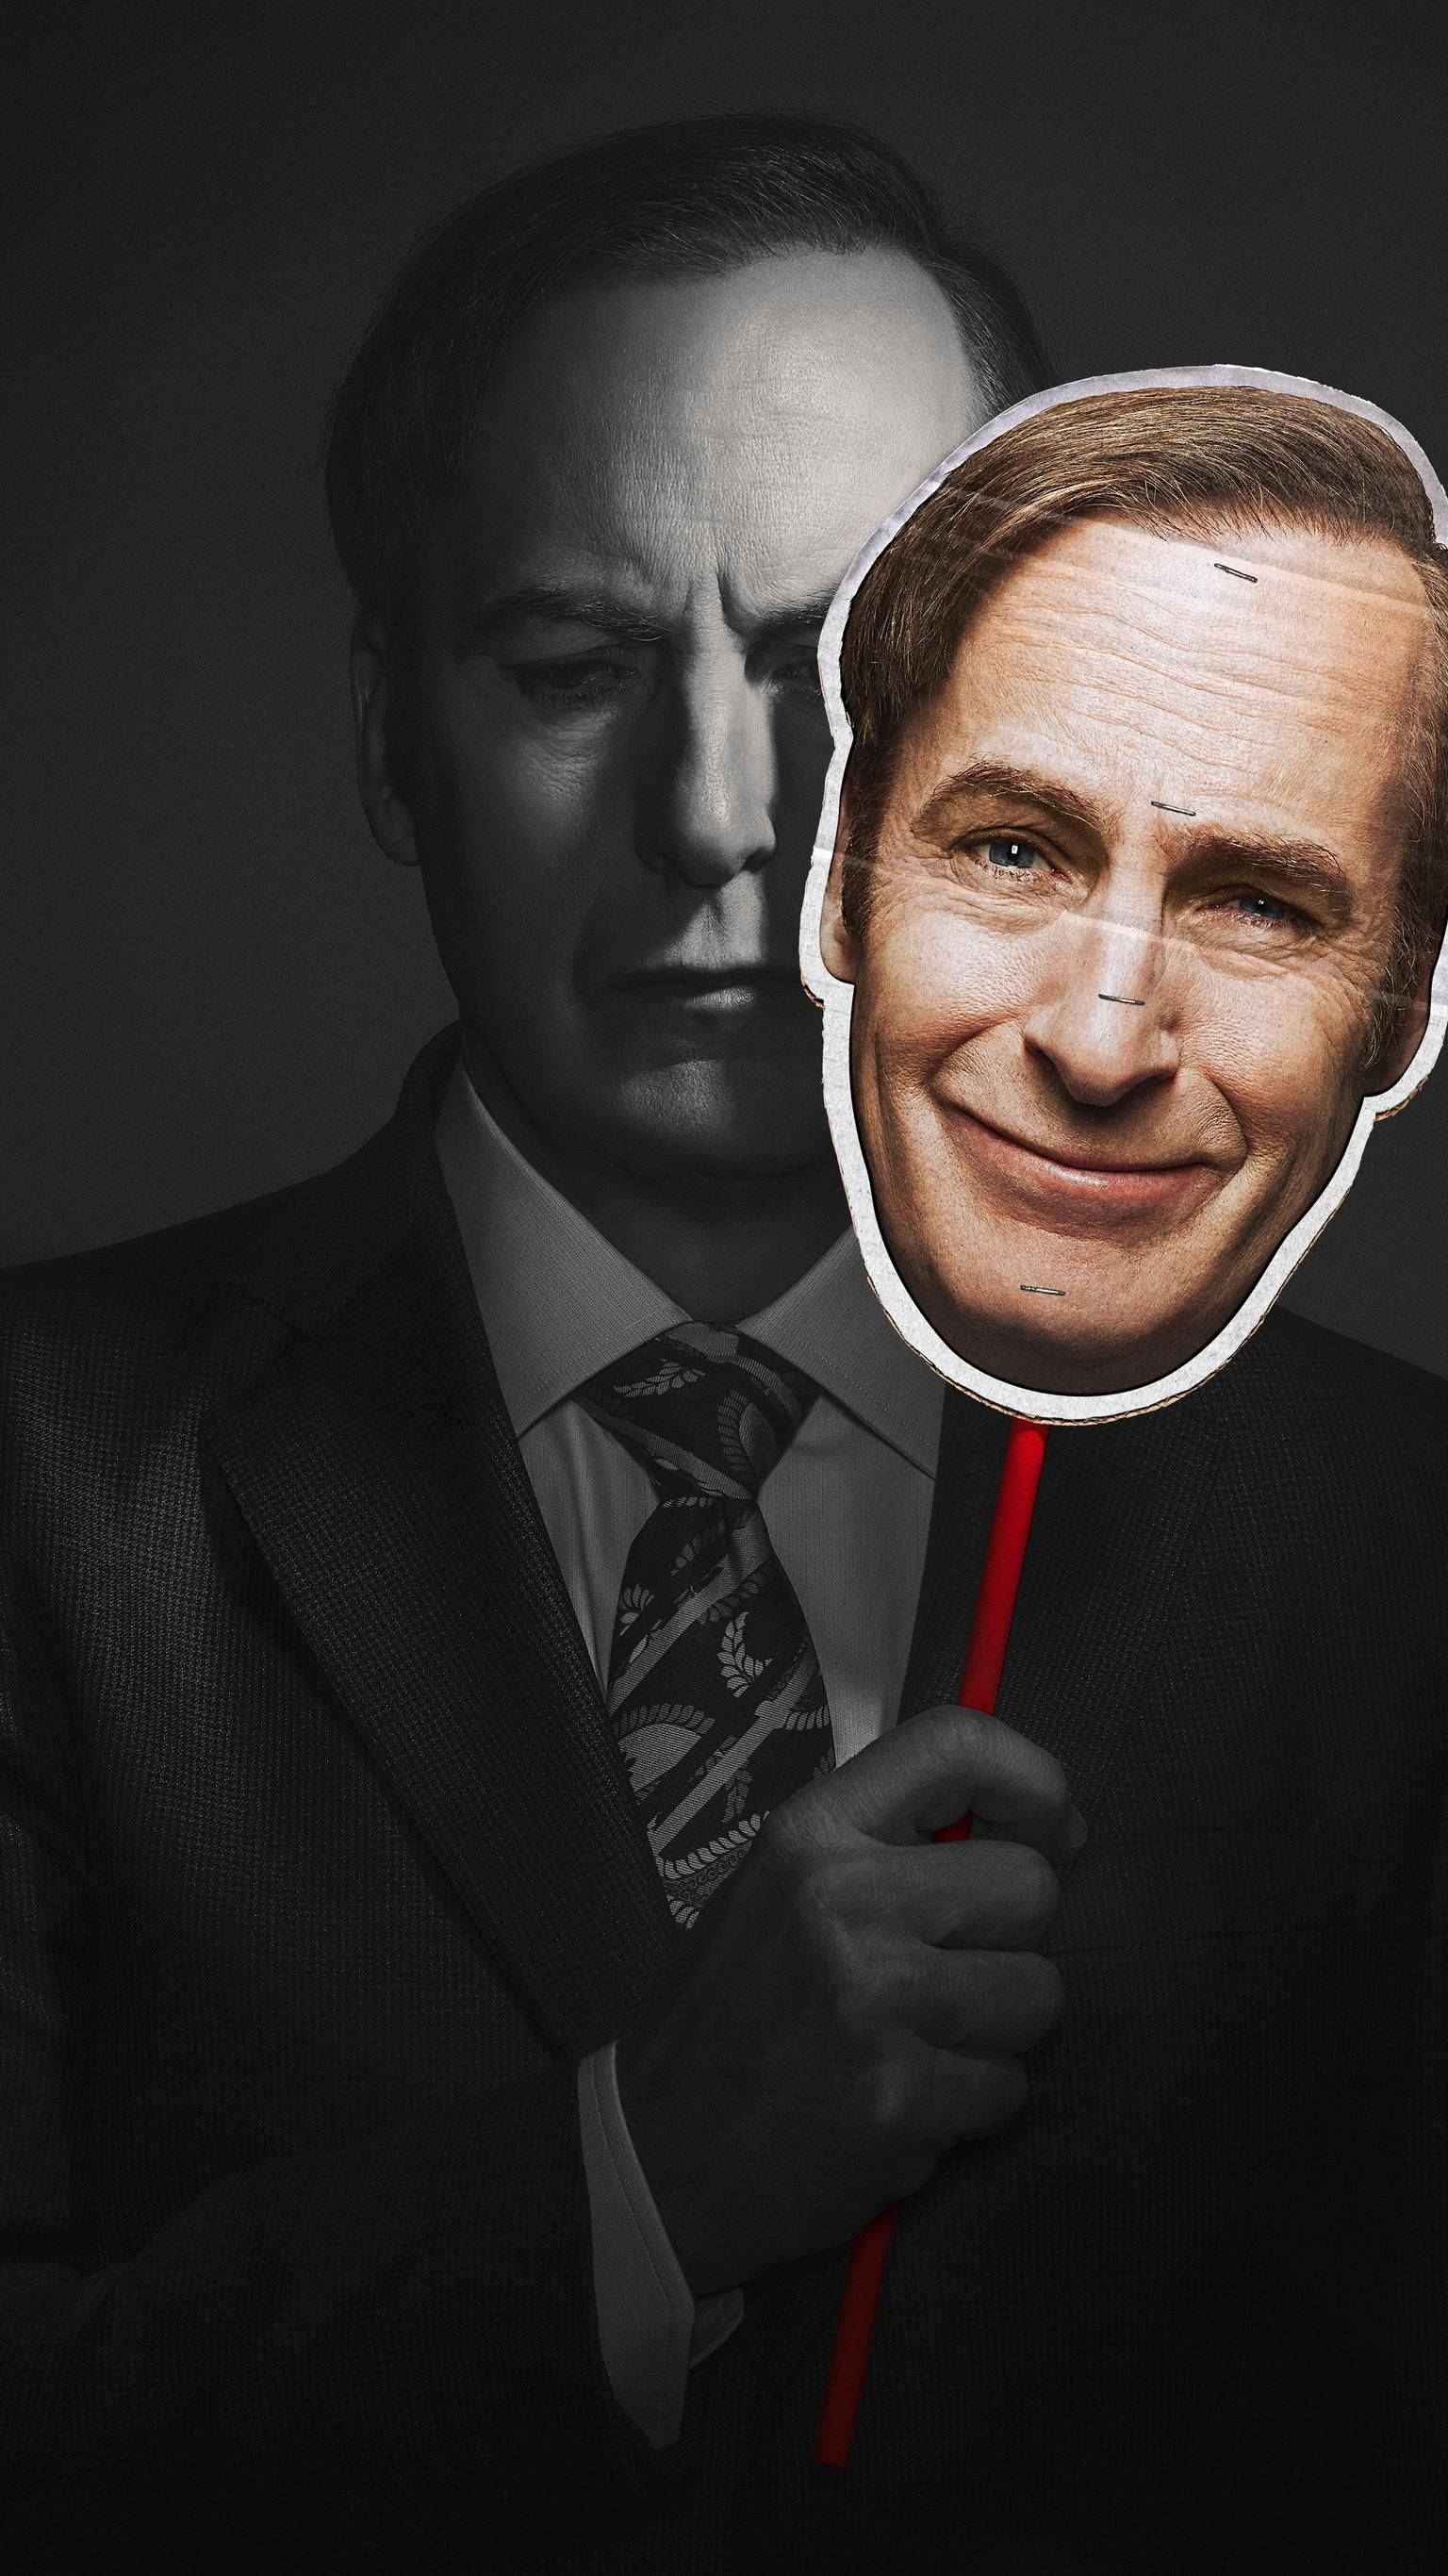 Better Call Saul Phone Wallpaper En 2019 Breacking Bad